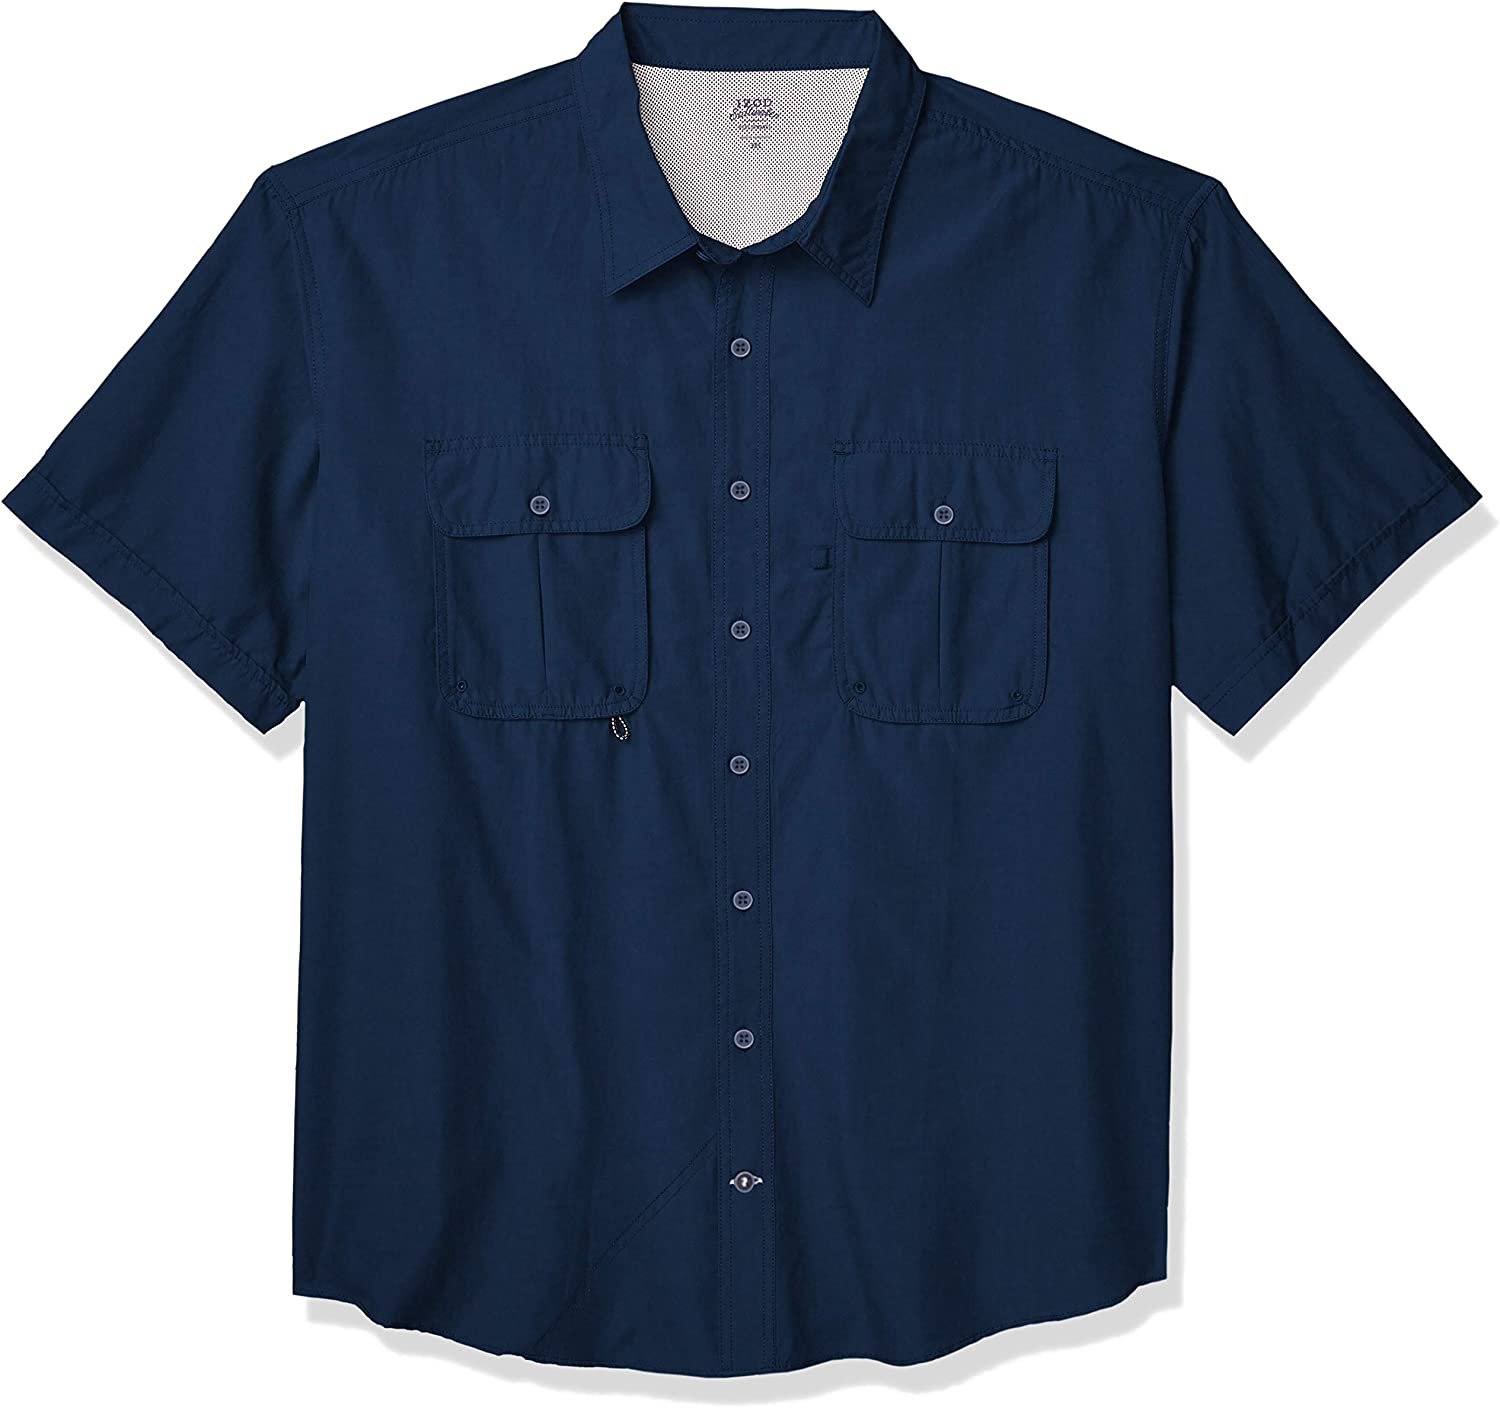 IZOD Men's Big & Tall Big and Tall Short Sleeve Beach Button Down Solid Shirt